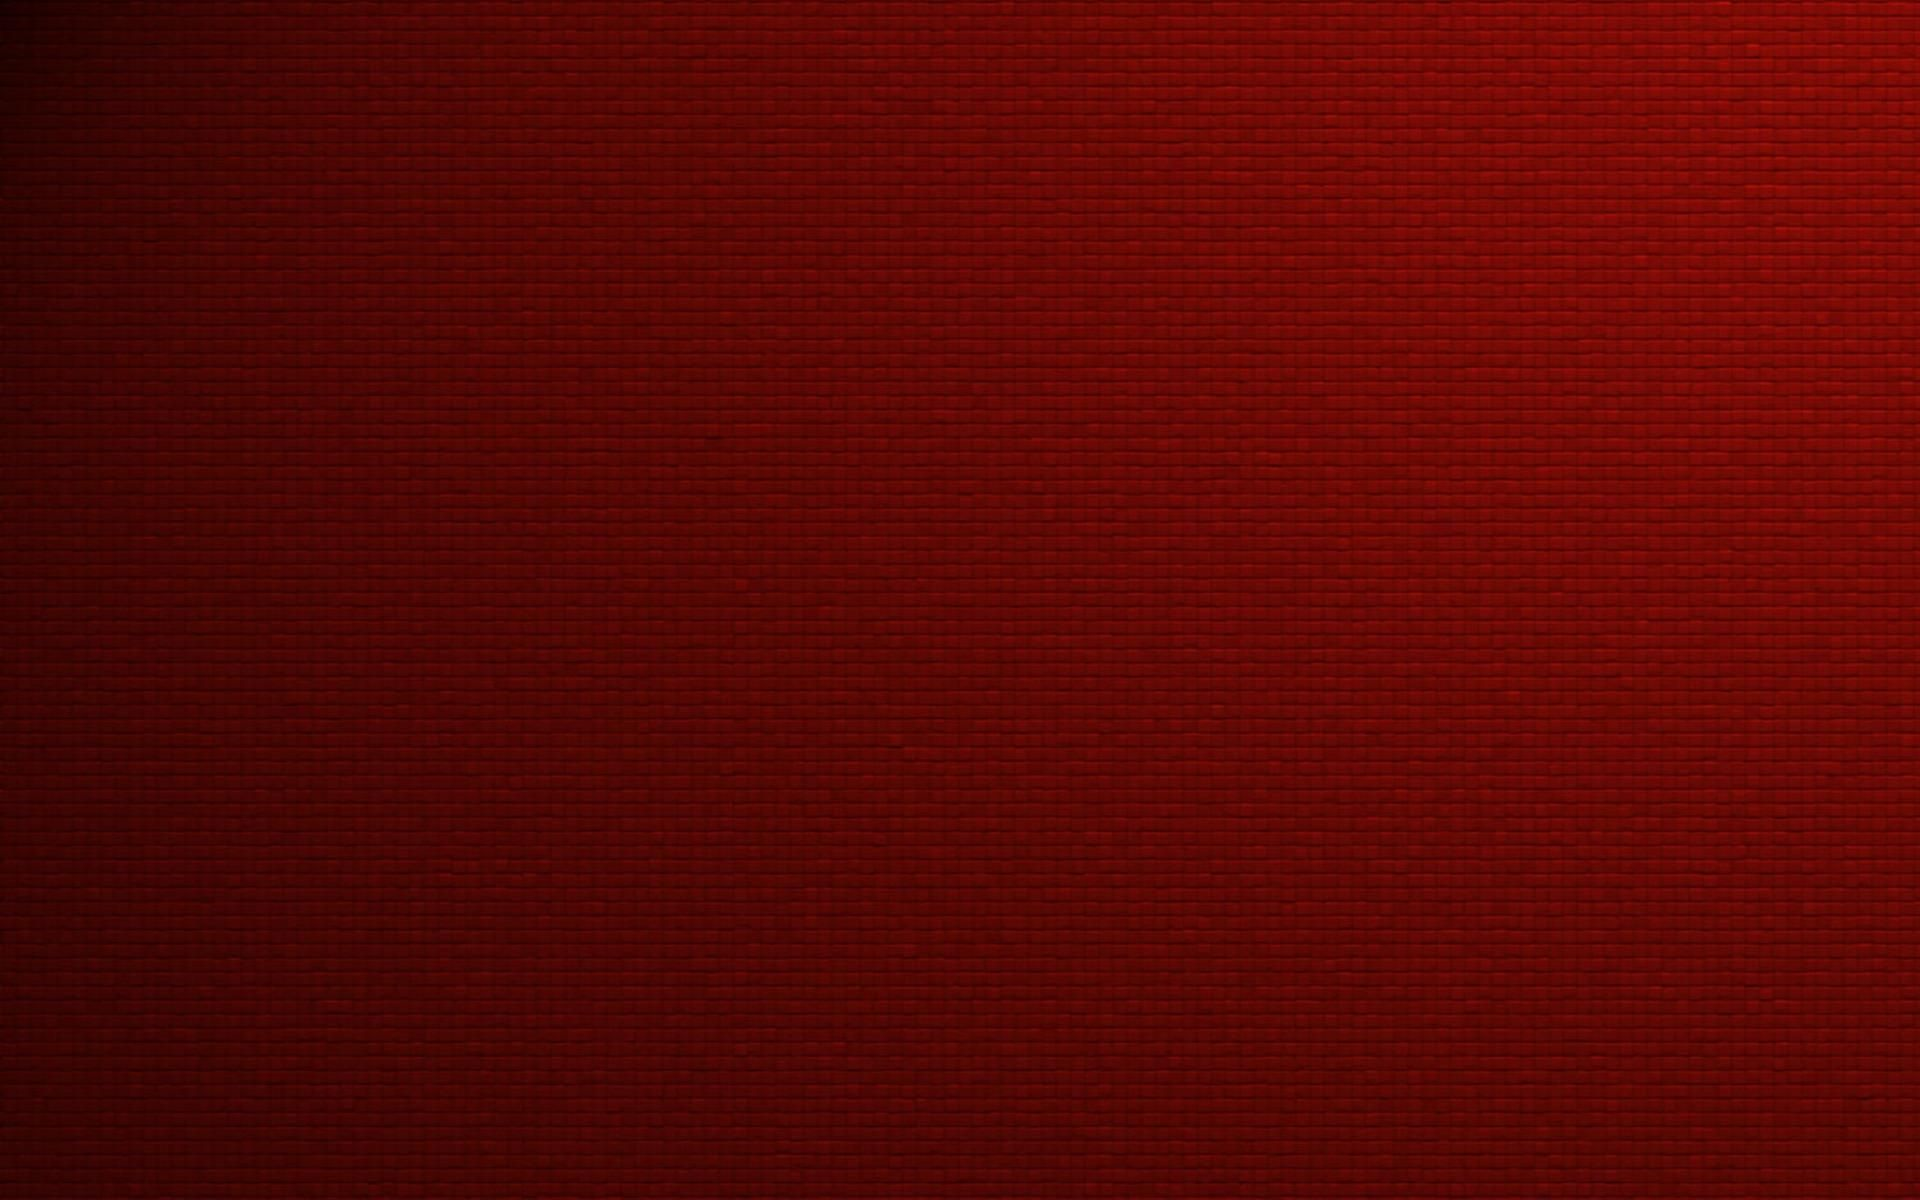 Red Desktop Backgrounds Wallpaper   HD Wallpapers   Pinterest ... for Red Brown Background Wallpaper  166kxo